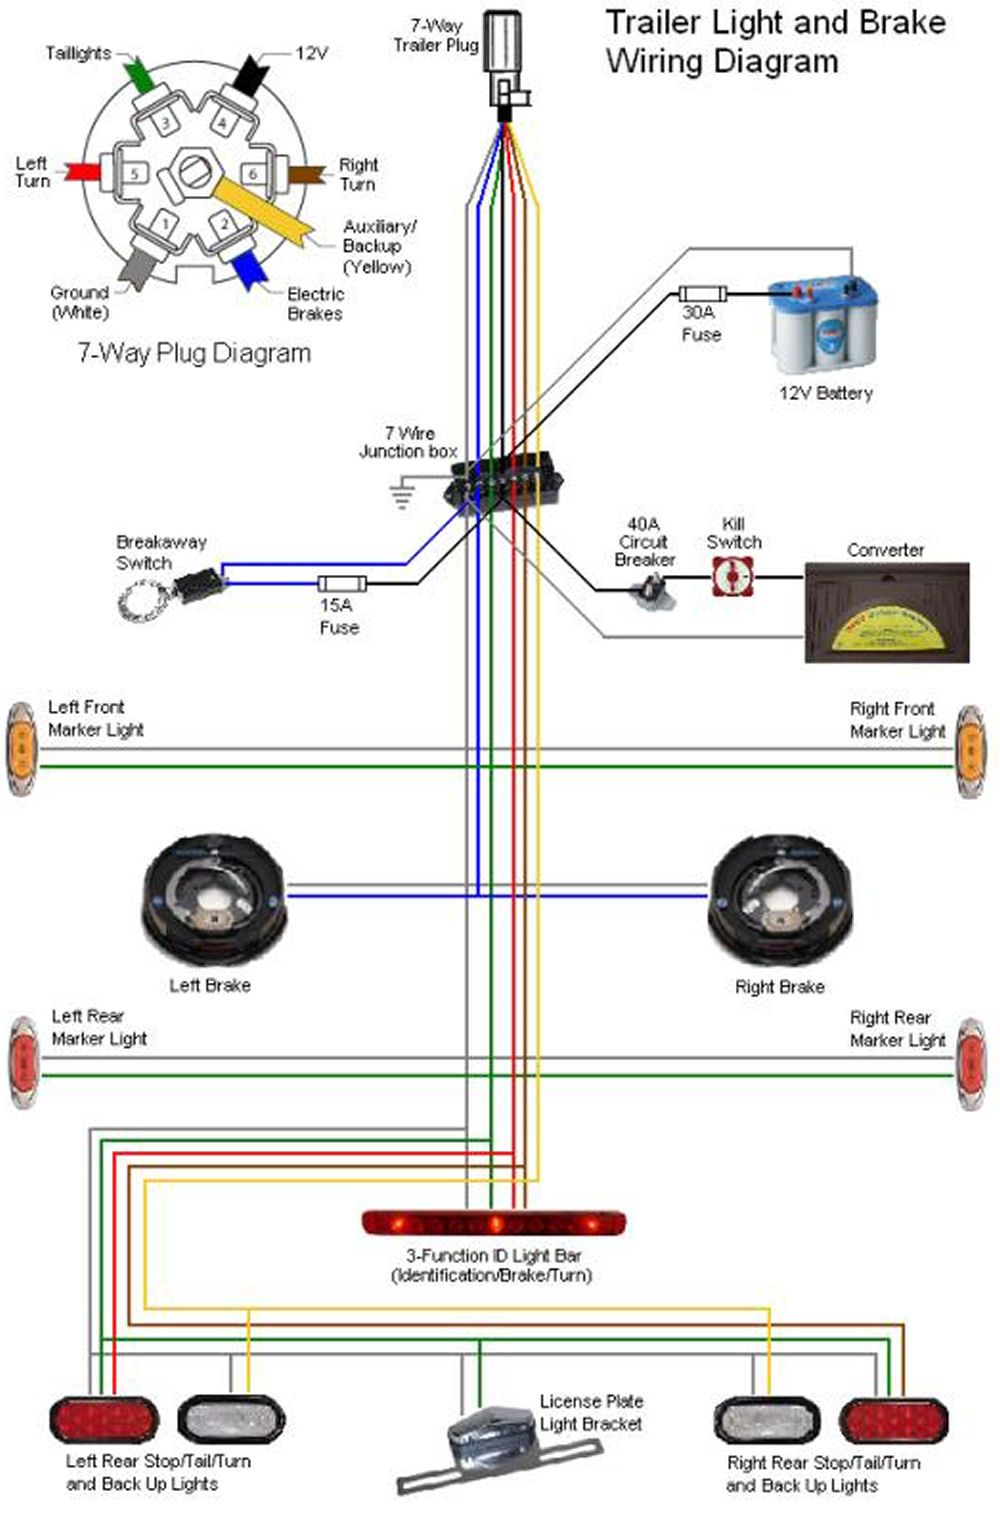 [ZHKZ_3066]  12v tow diagram.jpg; 1000 x 1530 (@28%) | Trailer light wiring, Utility  trailer, Car trailer | Caliber Trailer Light Wiring Diagram 7 Wire |  | Pinterest